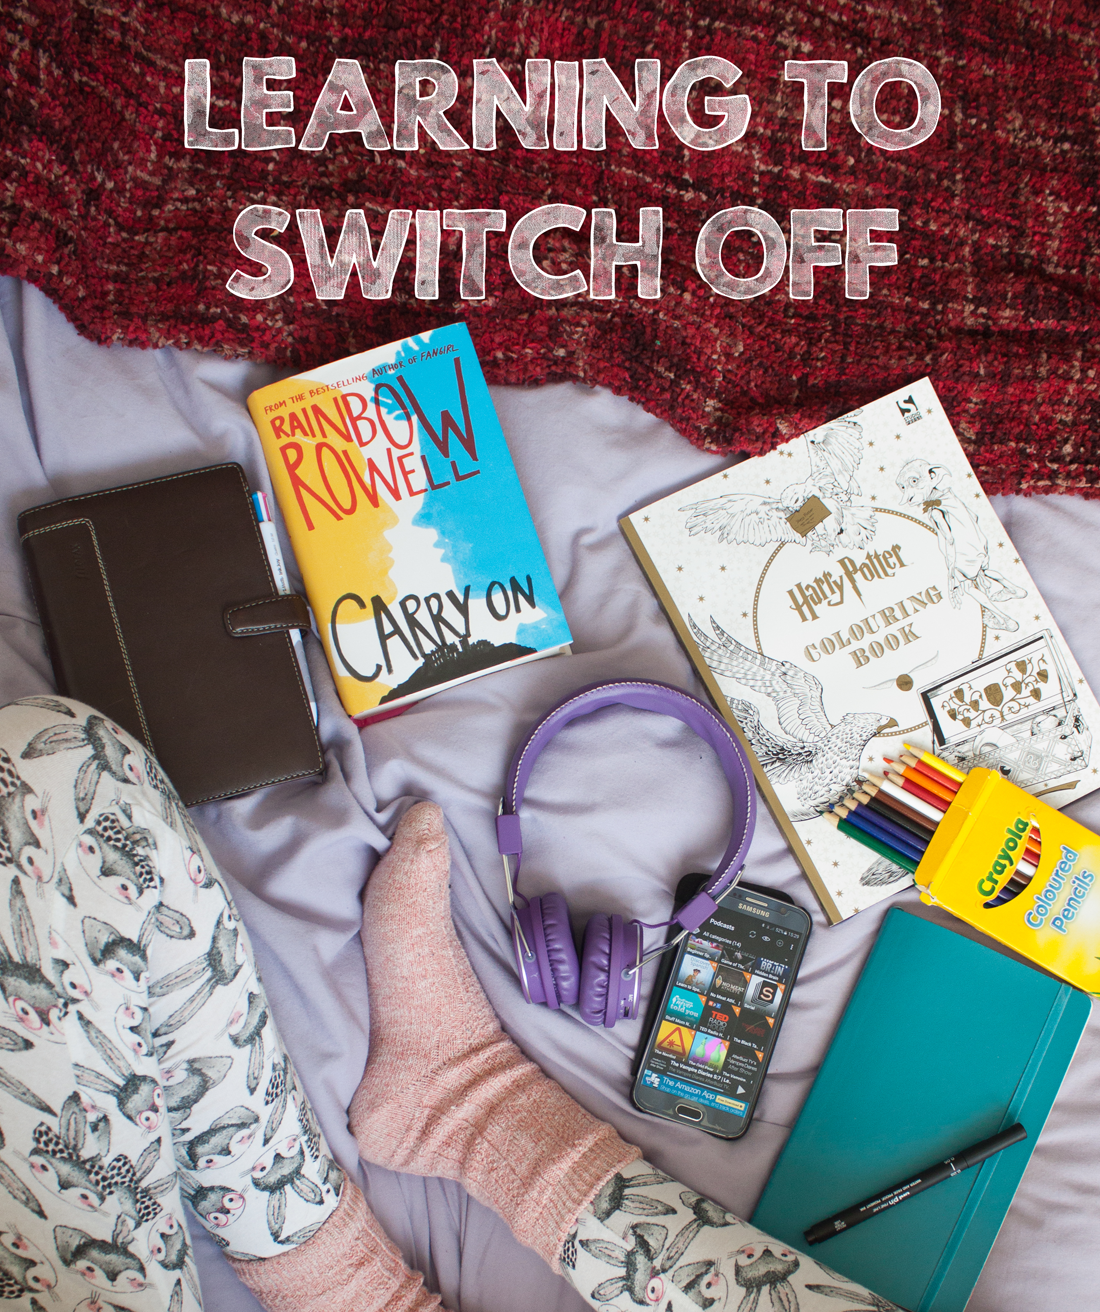 Learning-to-Switch-Off | lifeofkitty.co.uk